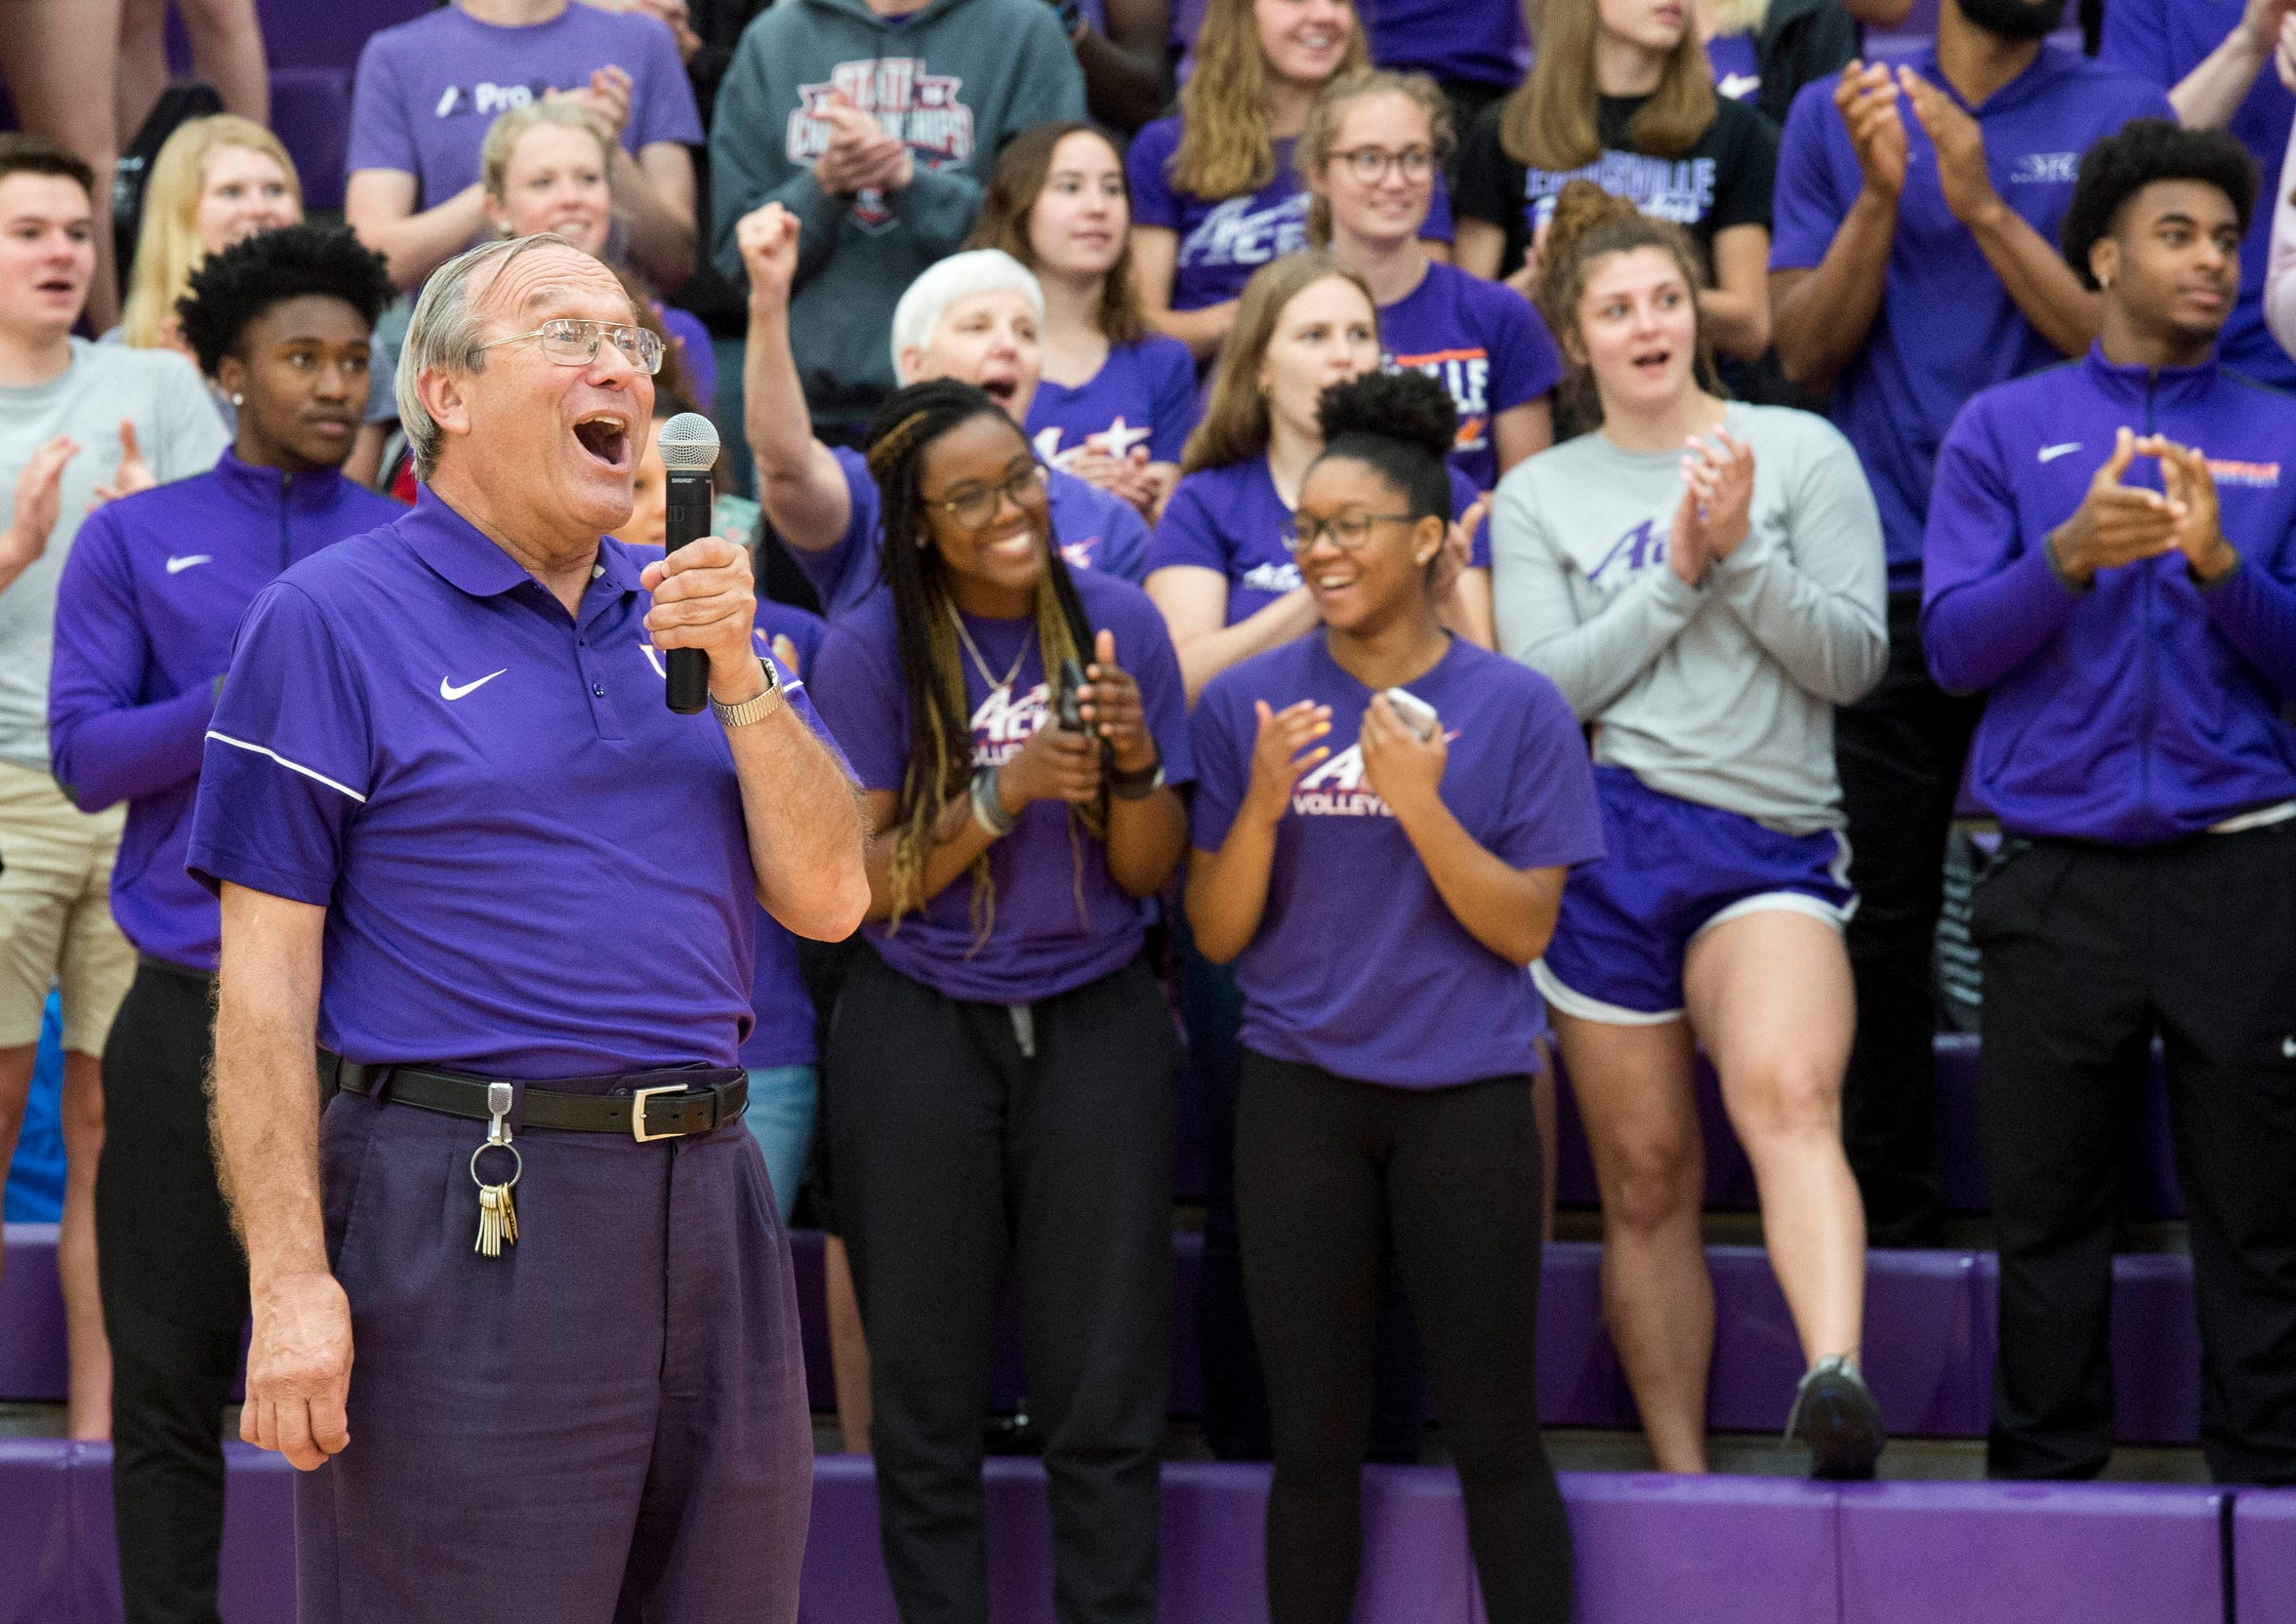 Earlier this month, University of Evansville athletics' equipment manager Daryl Buente sang the school song fight song during his sendoff after 38 years full-time with the school.